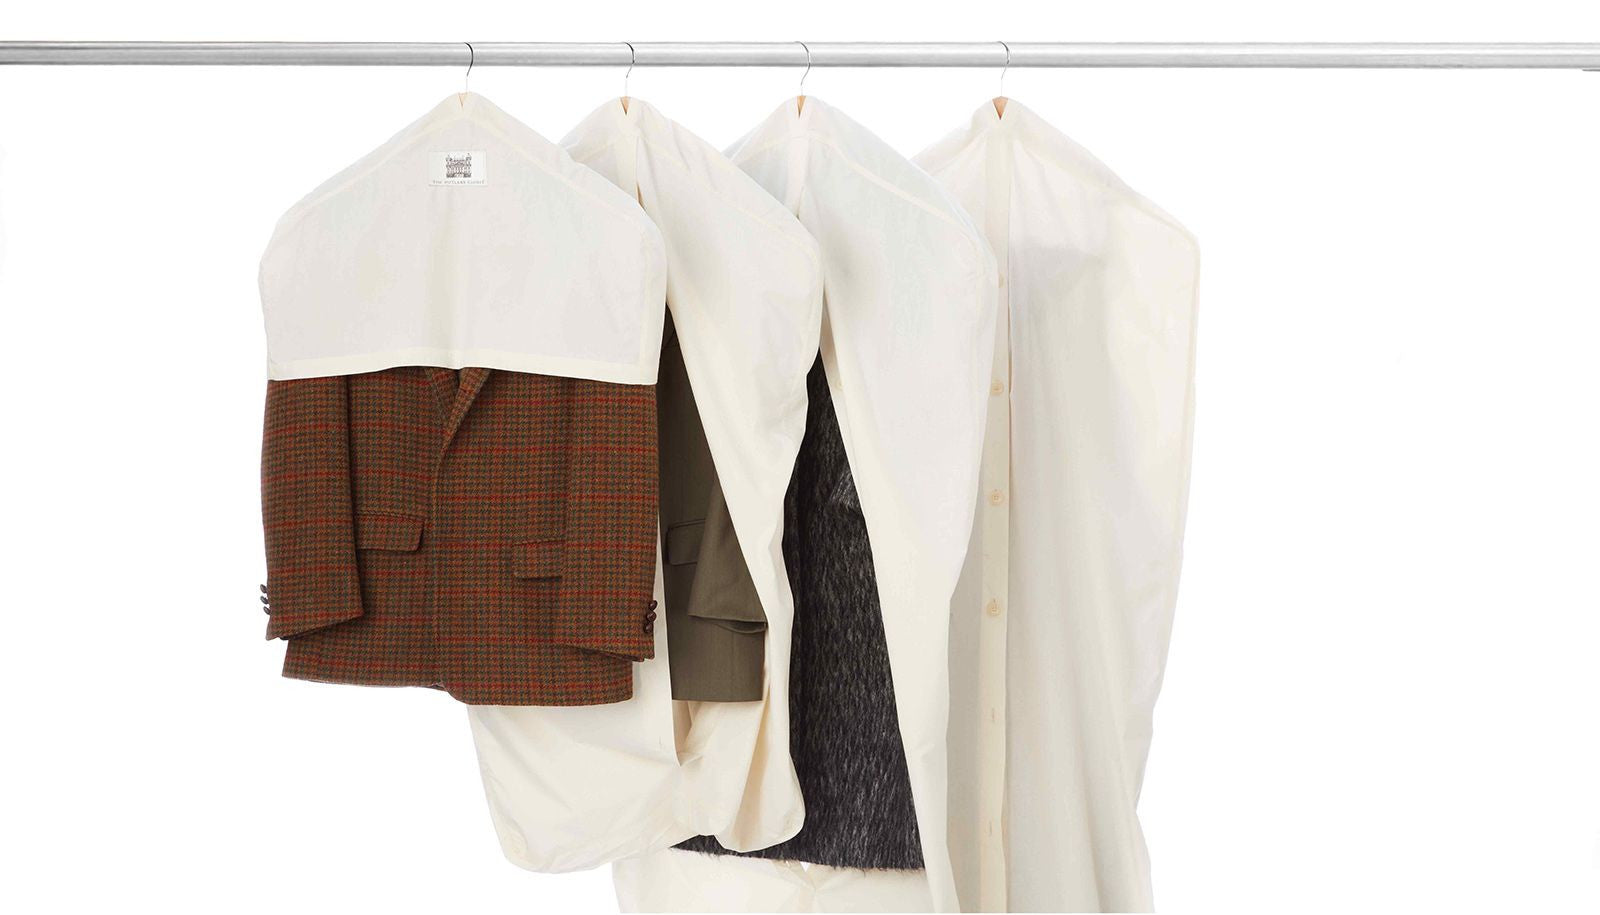 The Butler's Closet Cotton Garment Covers